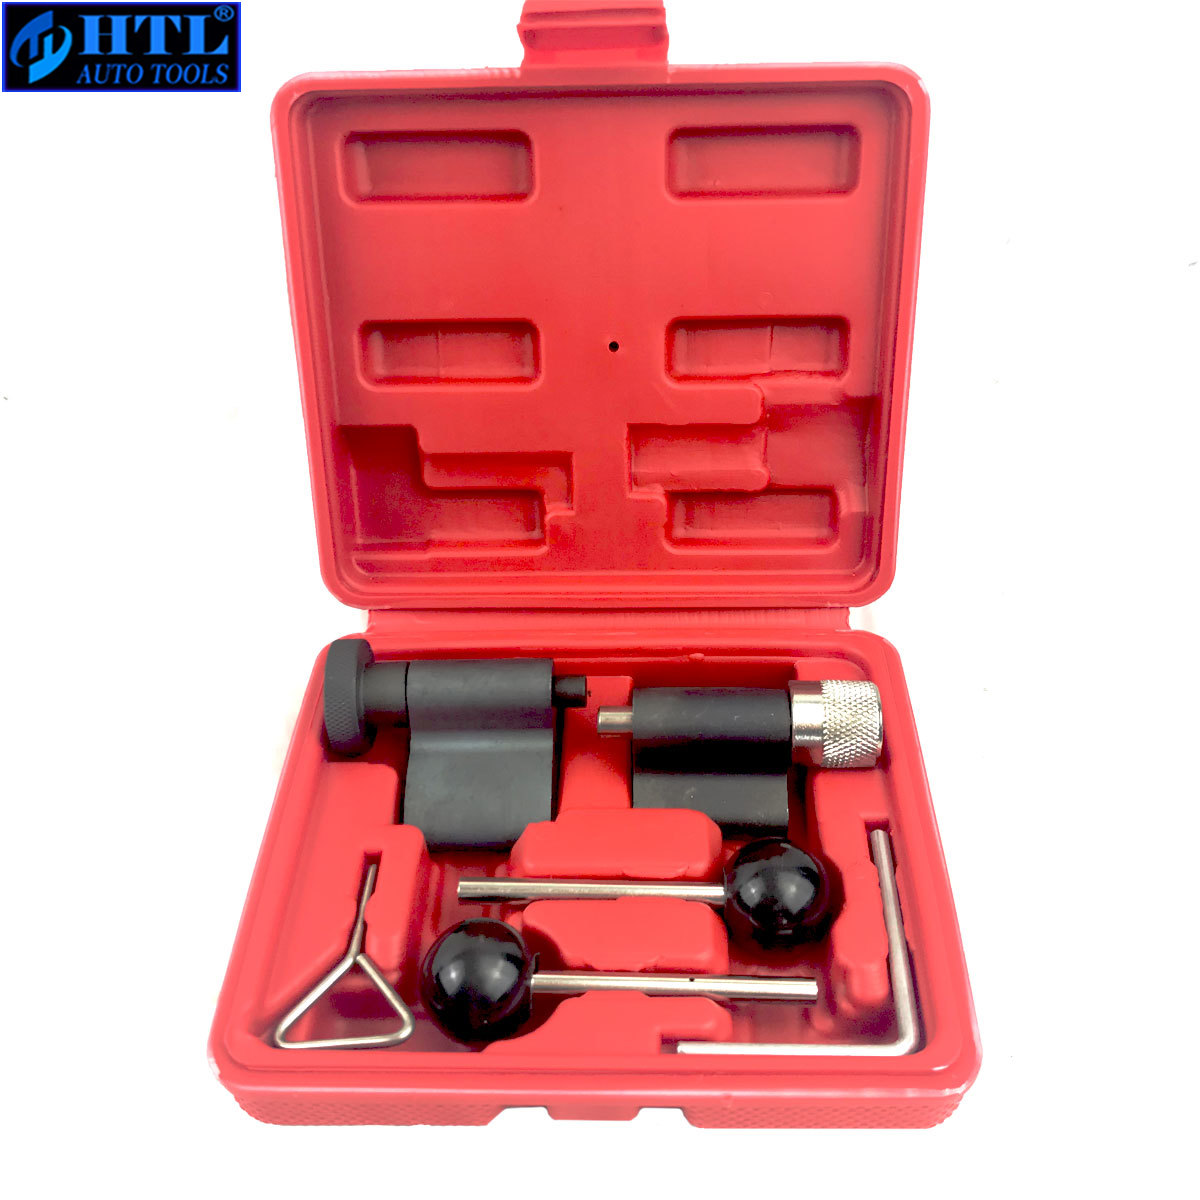 6pc Universal Diesel Engine Timing Cam Crank Locking Tool Set For VW AUDI T10050 T10100